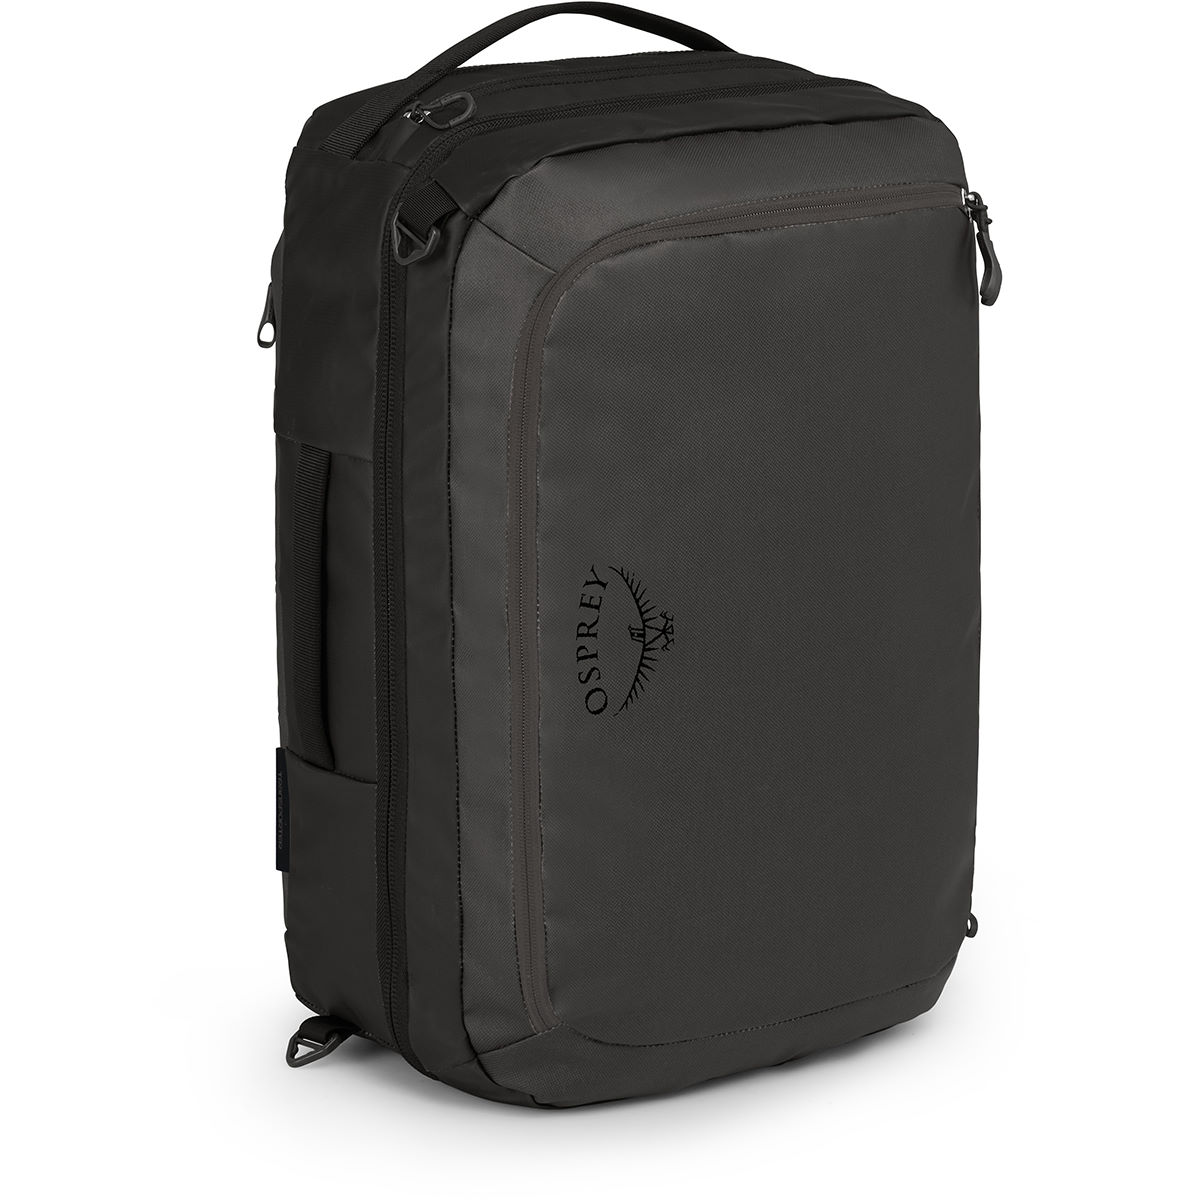 Osprey Osprey Transporter Global Carry-On 38 Bag   Travel Bags